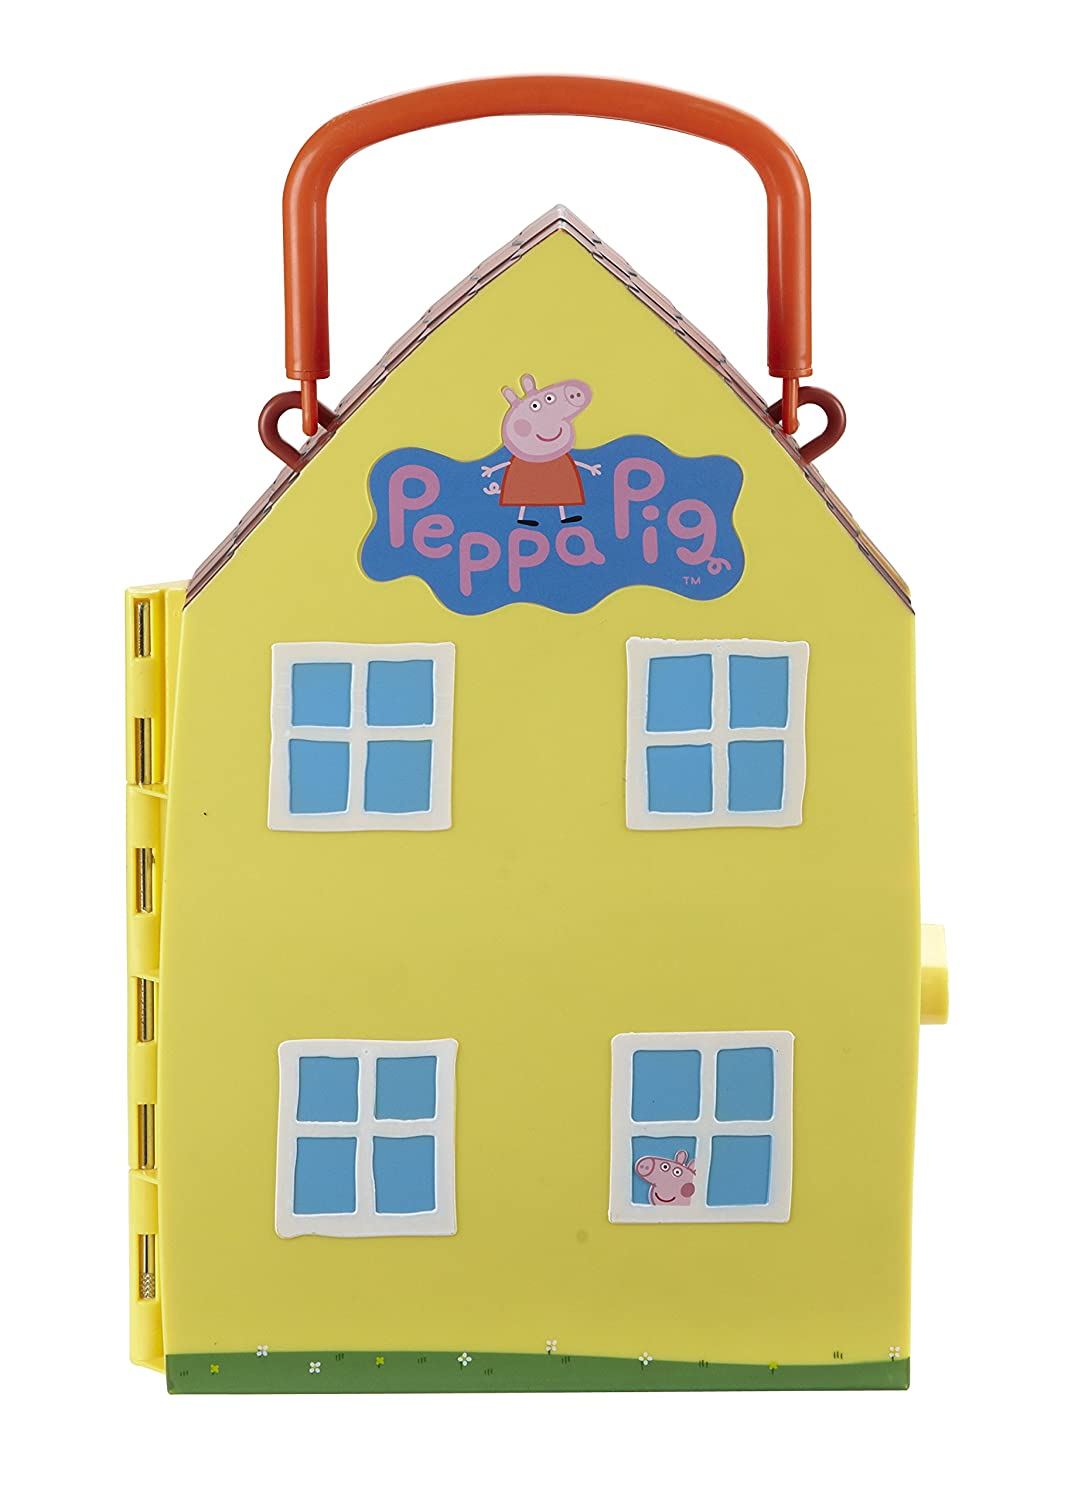 Peppa Pig Peppas World of Playset Amazoncouk Toys  Games